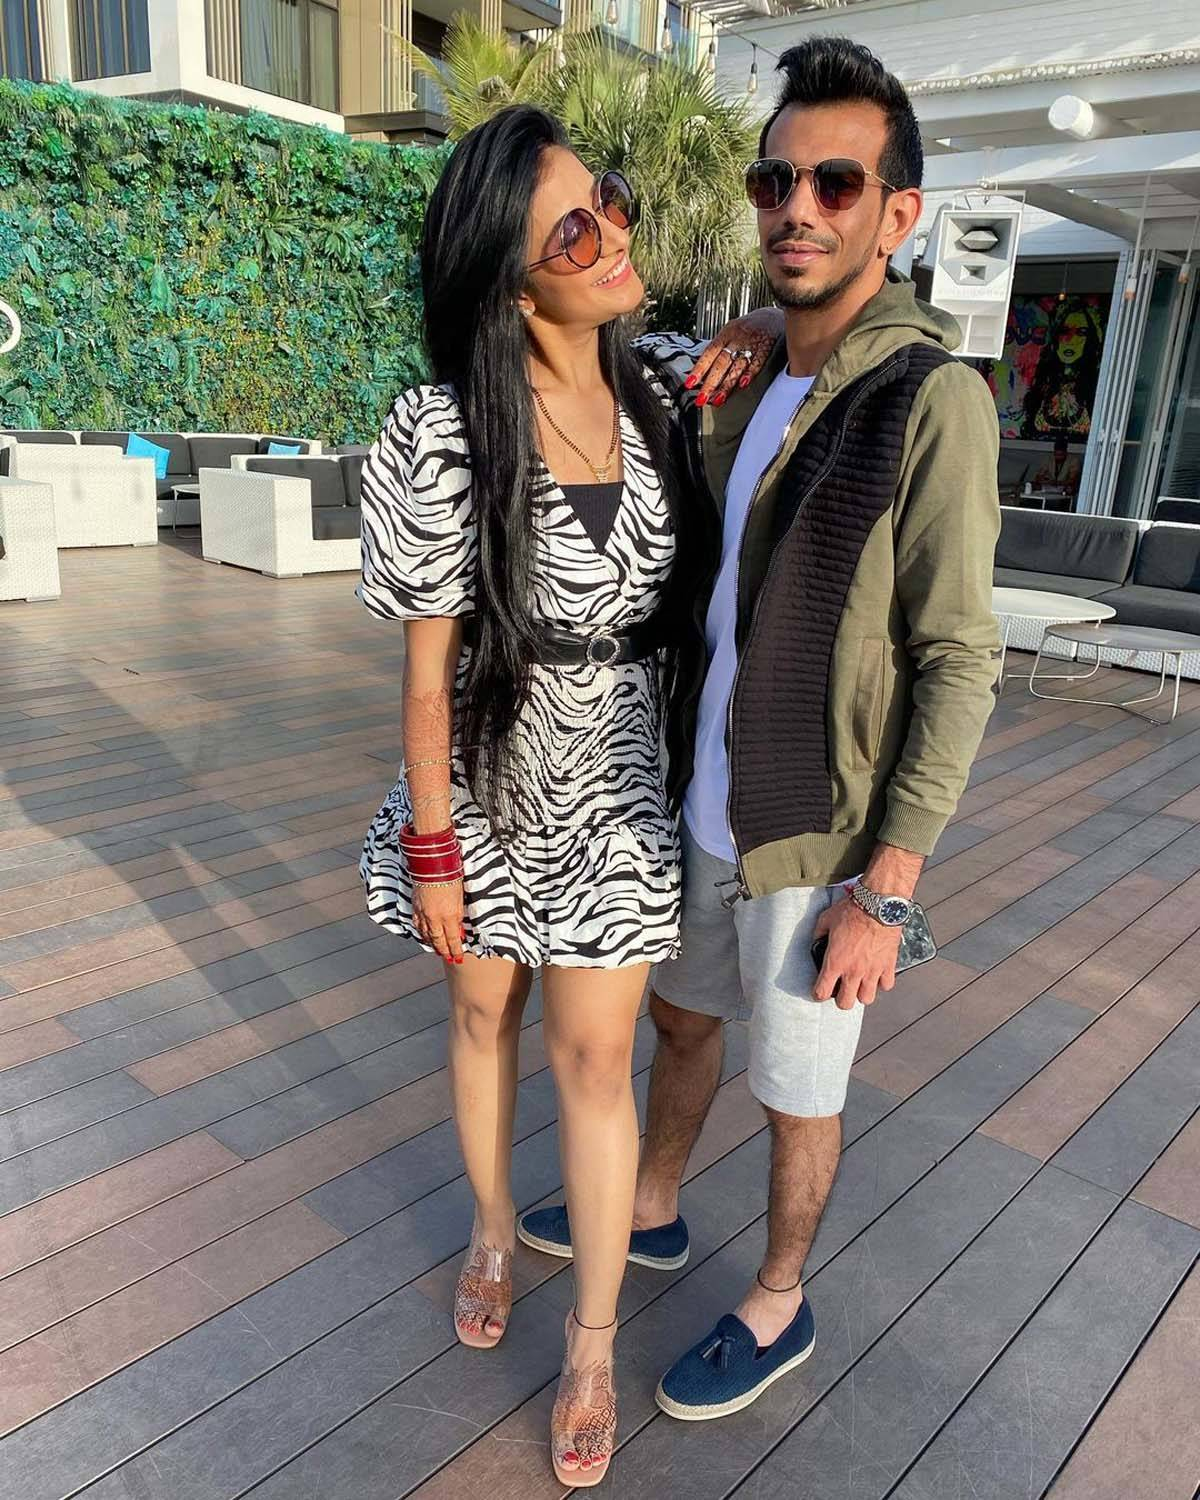 Honeymoon pictures of newly-wed couple cricketer Yuzvendra Chahal & Dhanashree Verma